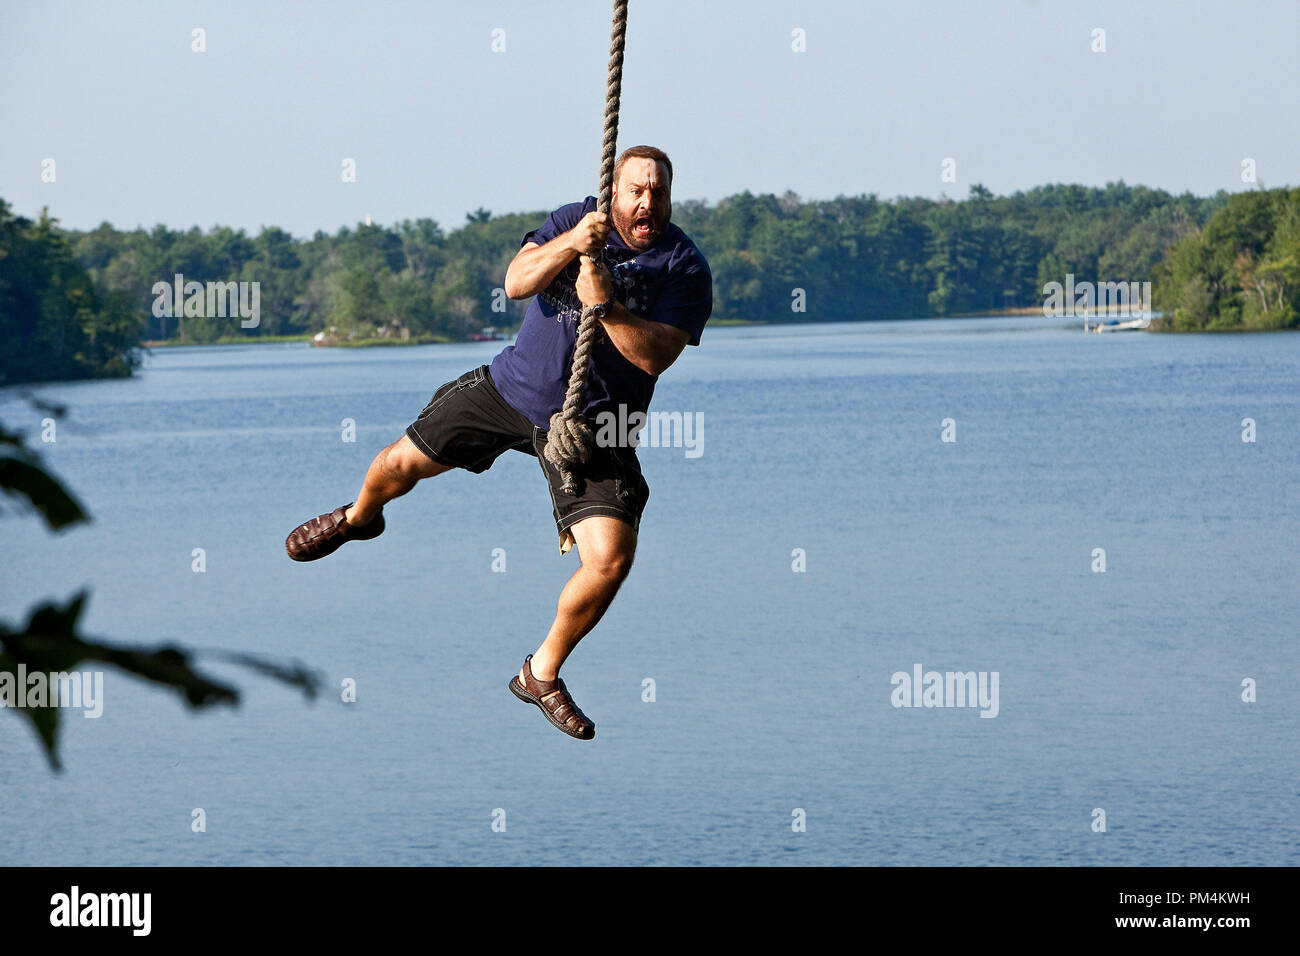 Eric Lamonsoff (Kevin James) shows the kids what they used to do when they were younger on the rope swing in Columbia Pictures' GROWN UPS. - Stock Image